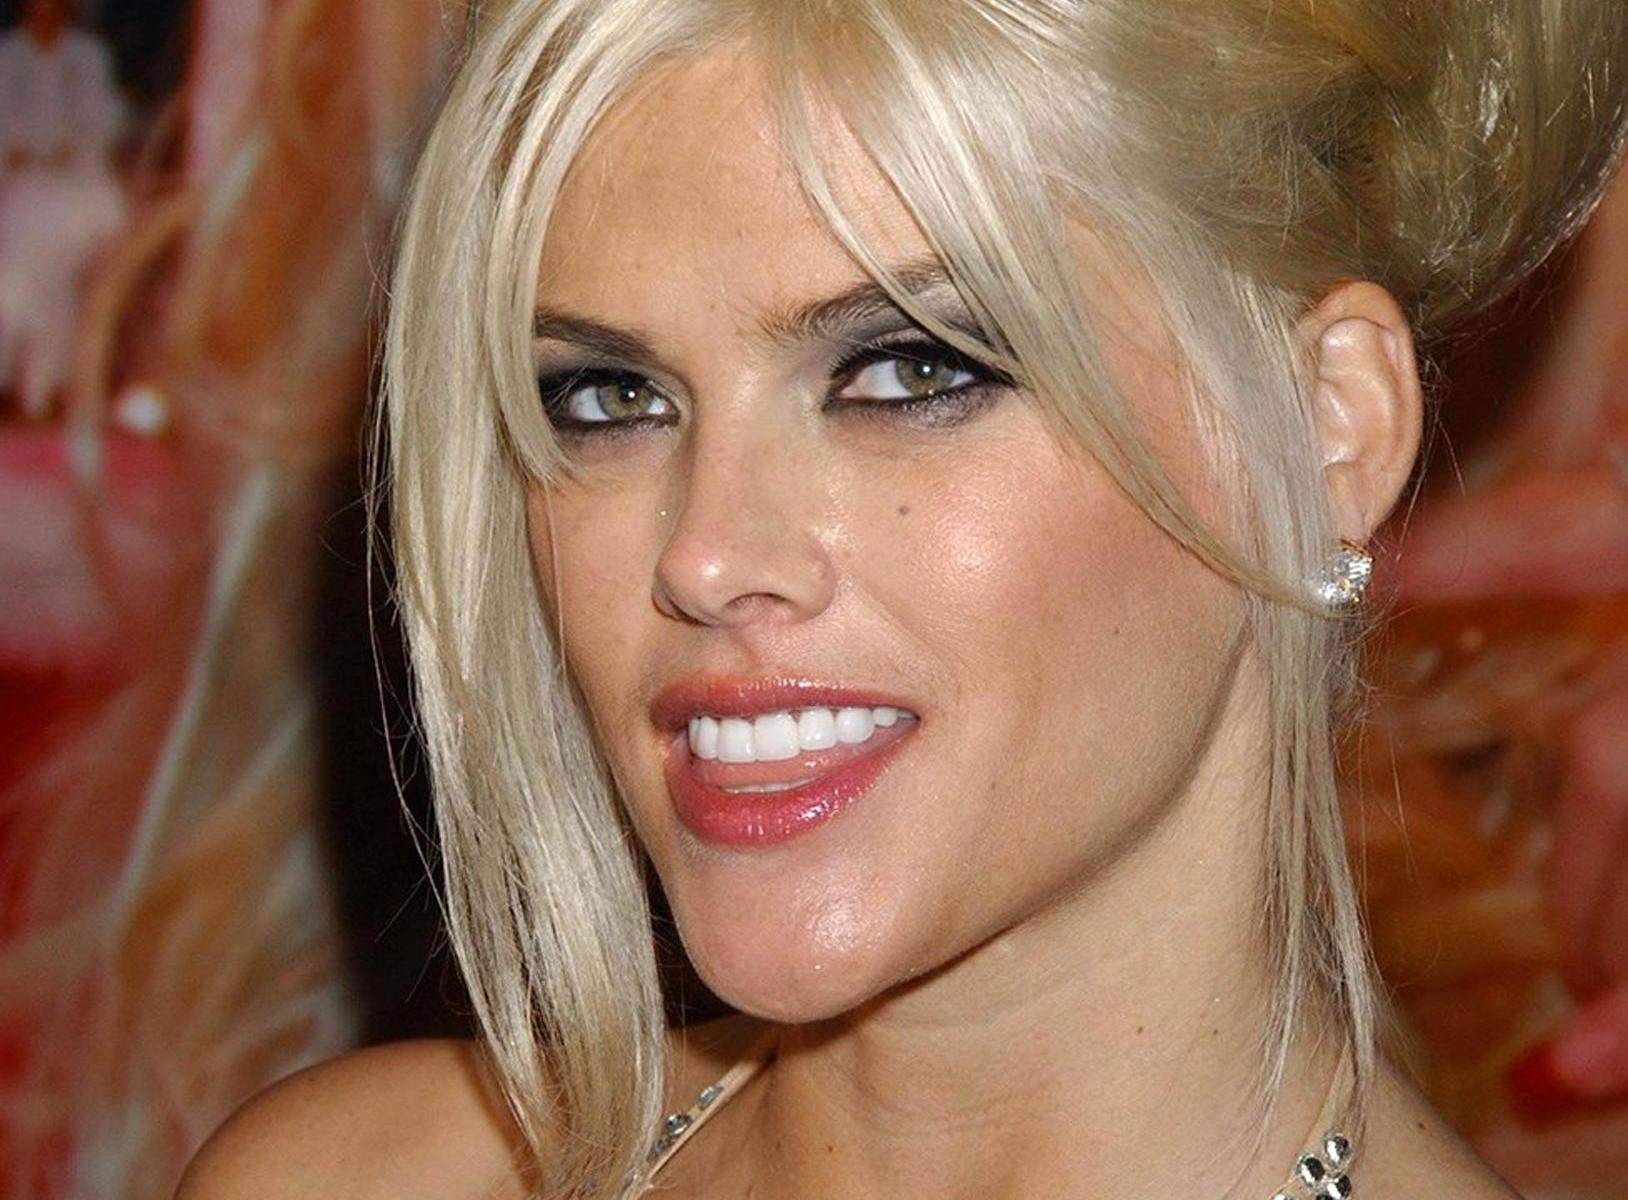 Celebrity Overdose – What Did They Use? : Anna Nicole Smith